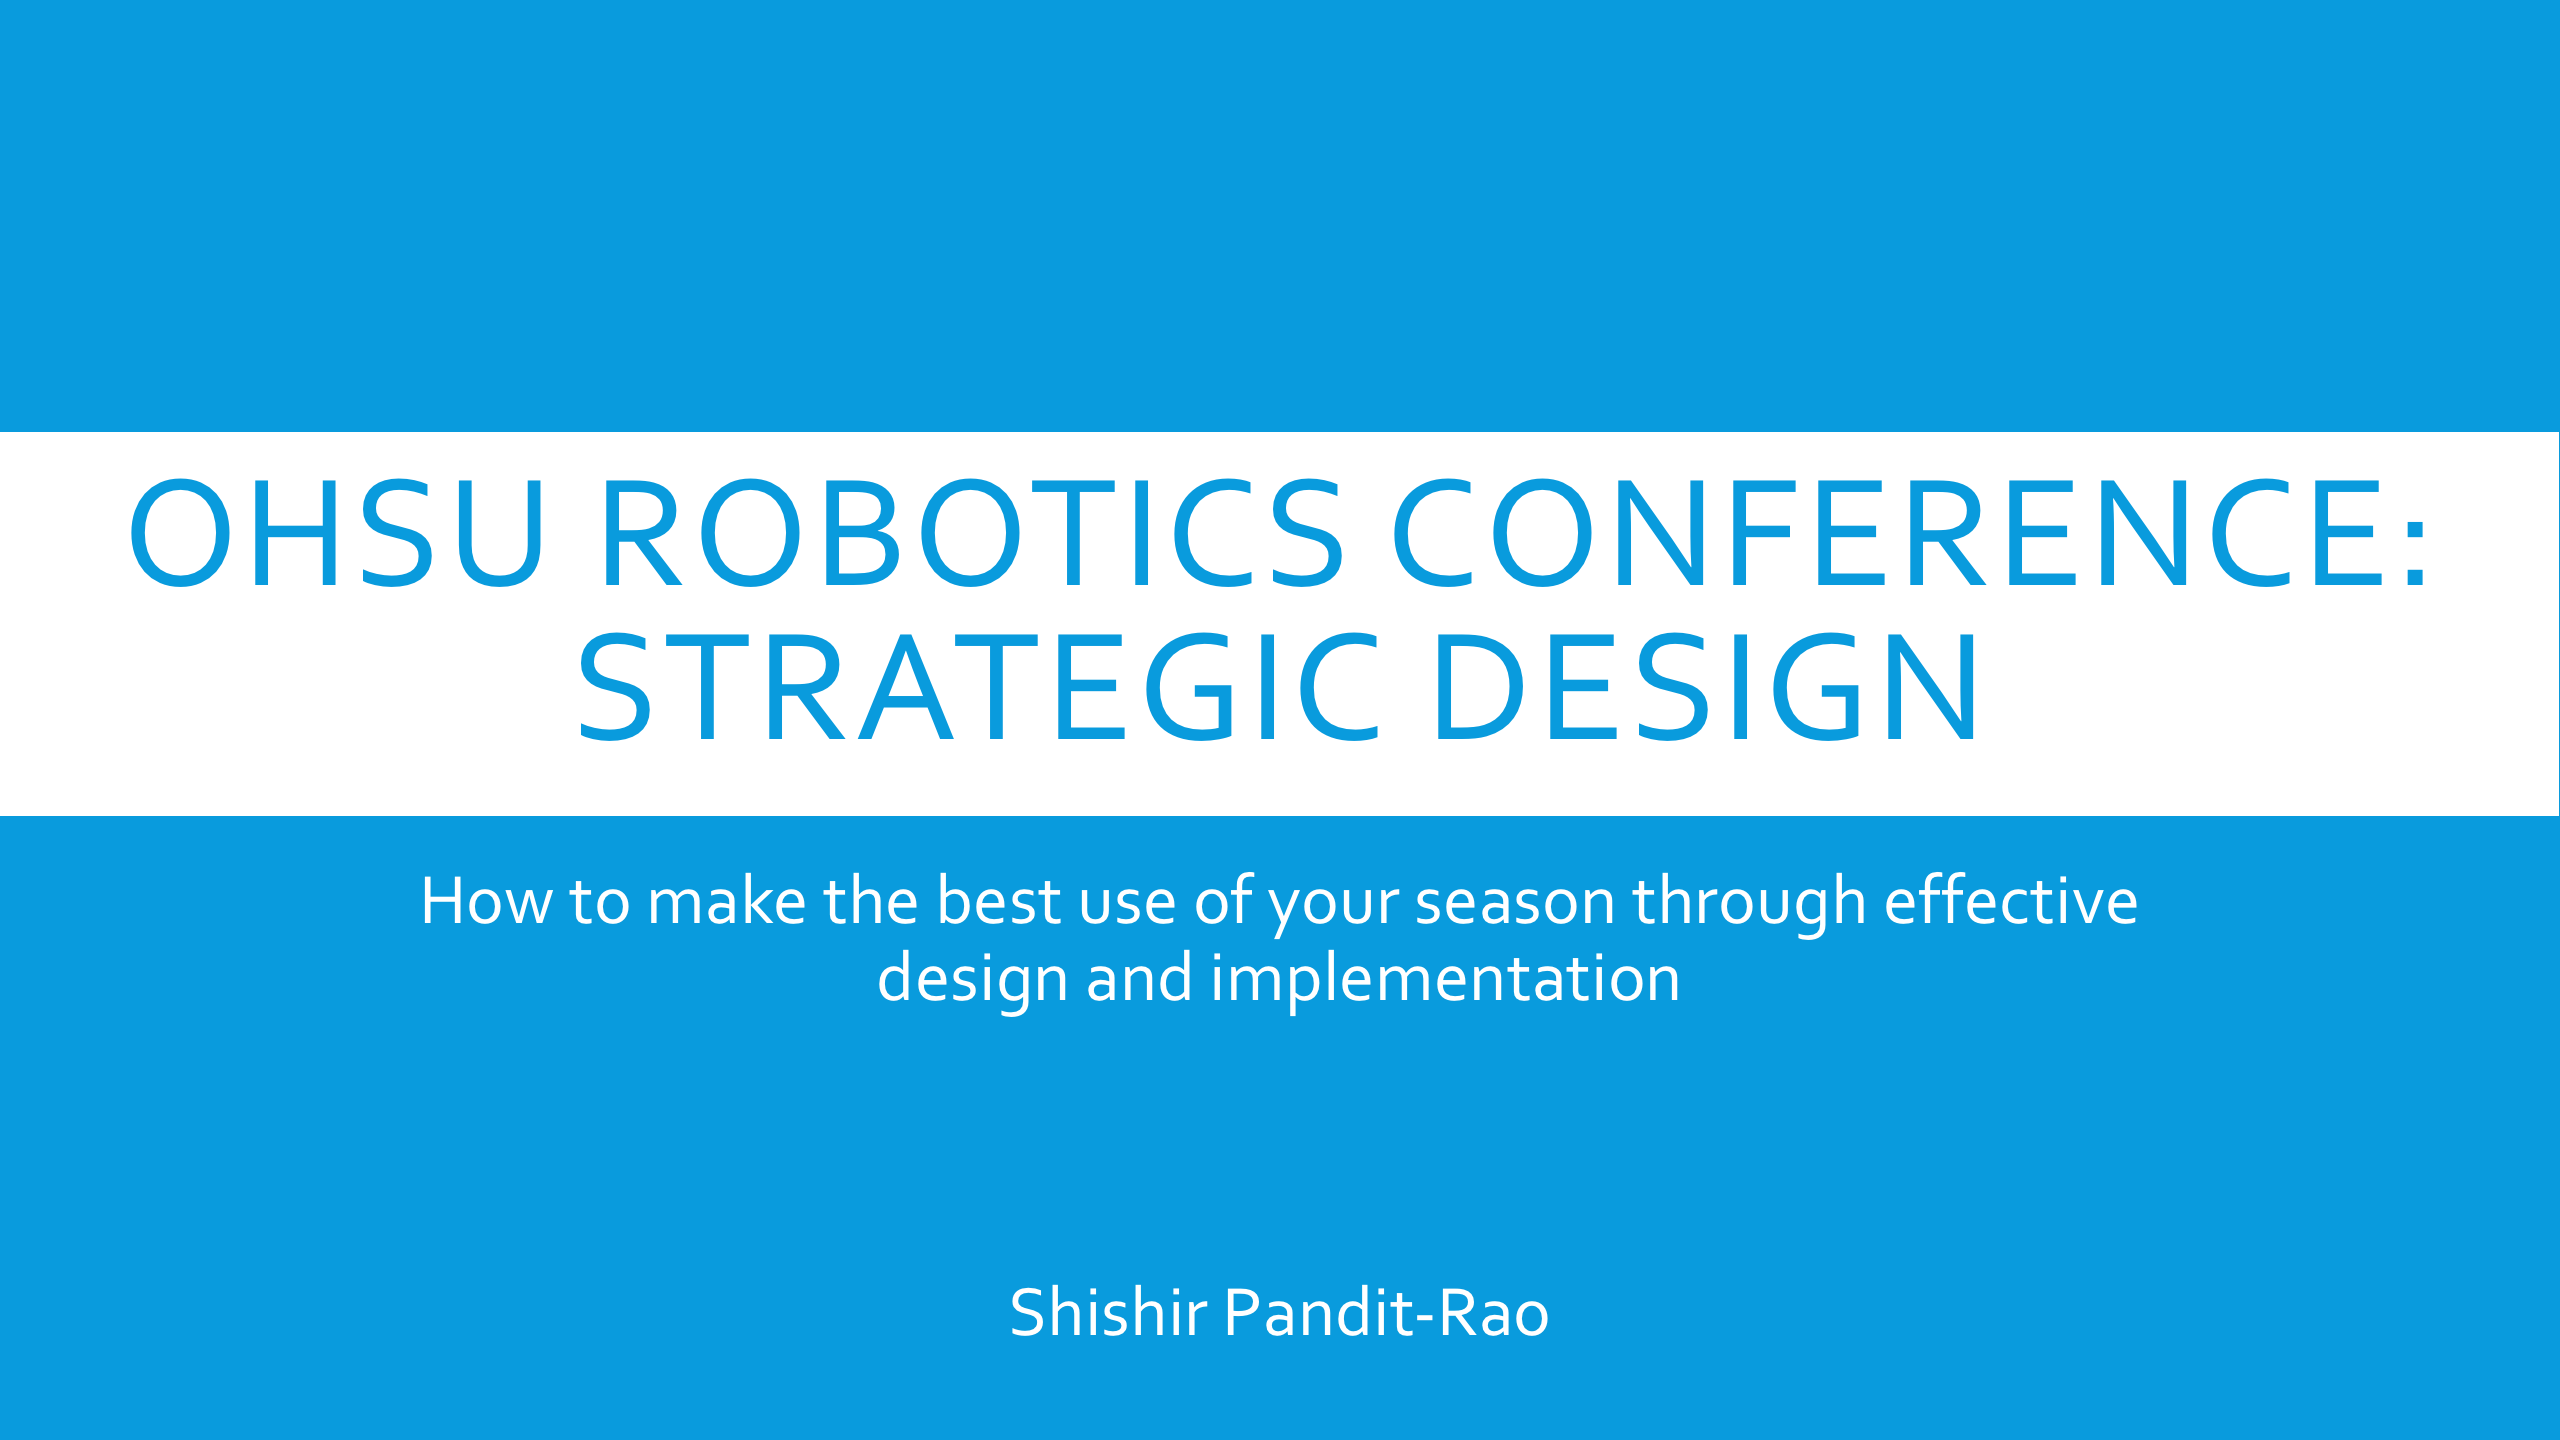 Strategic Design by RevAmped Robotics